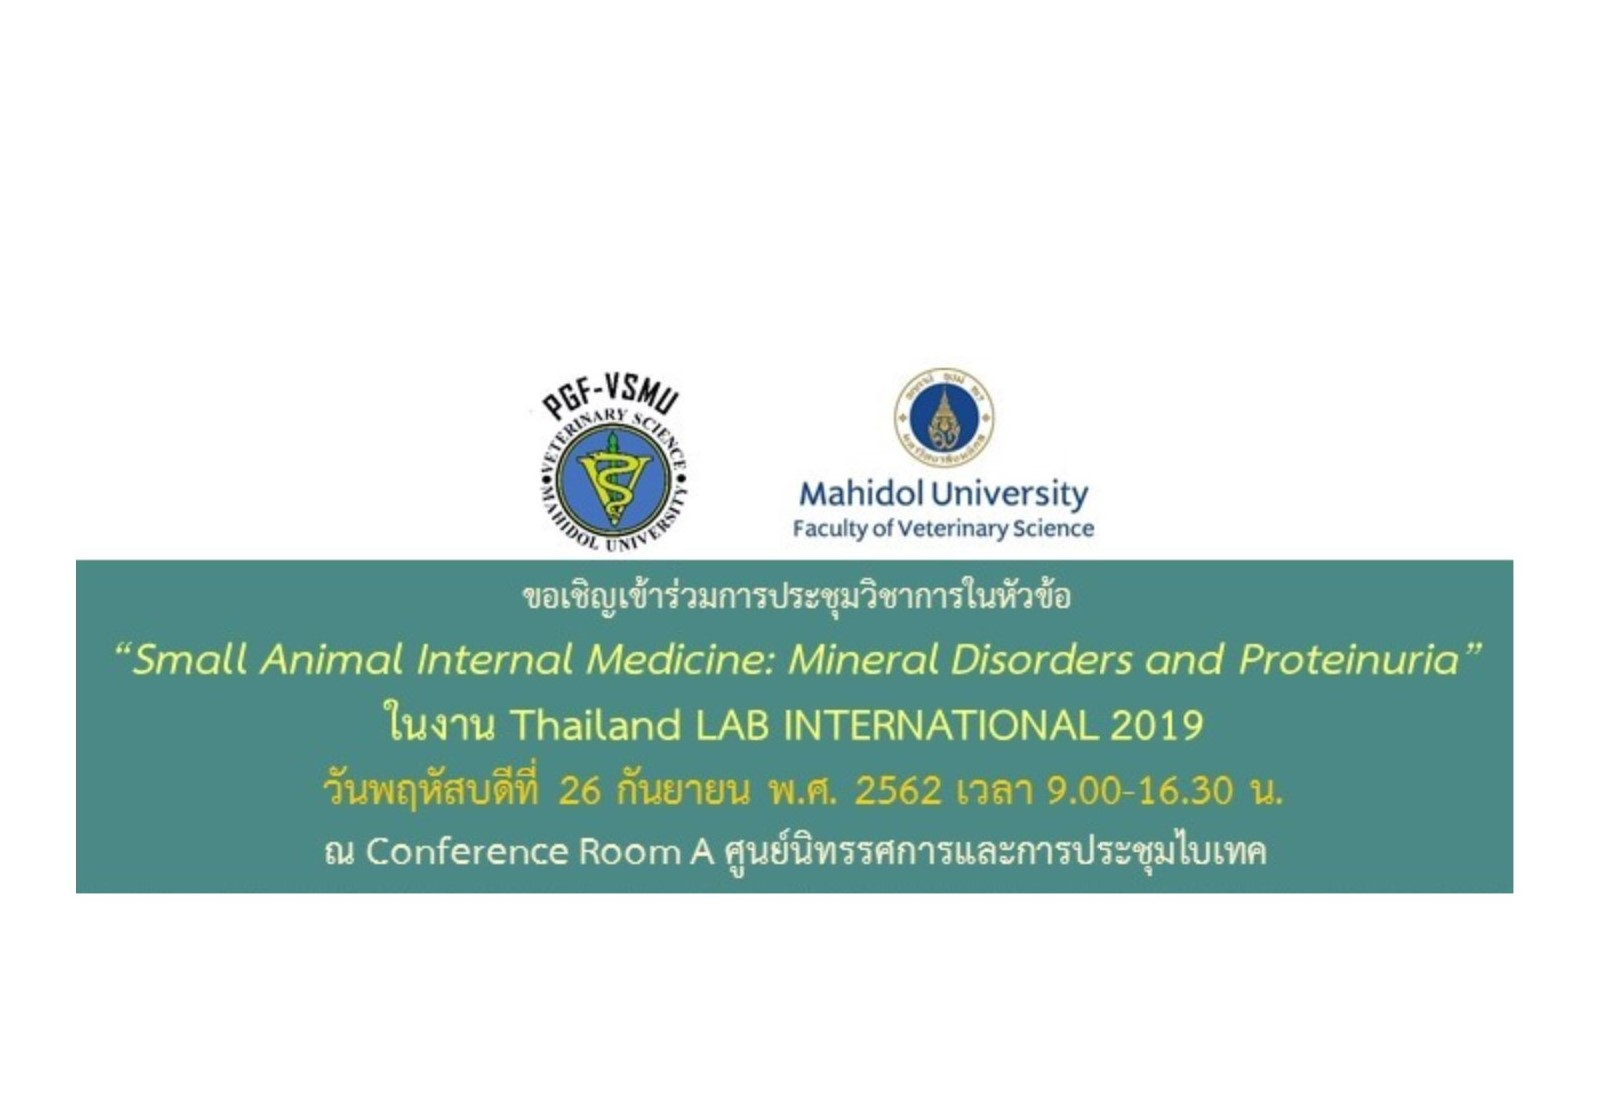 Small Animal Internal Medicine: Mineral Disorders and Proteinuria